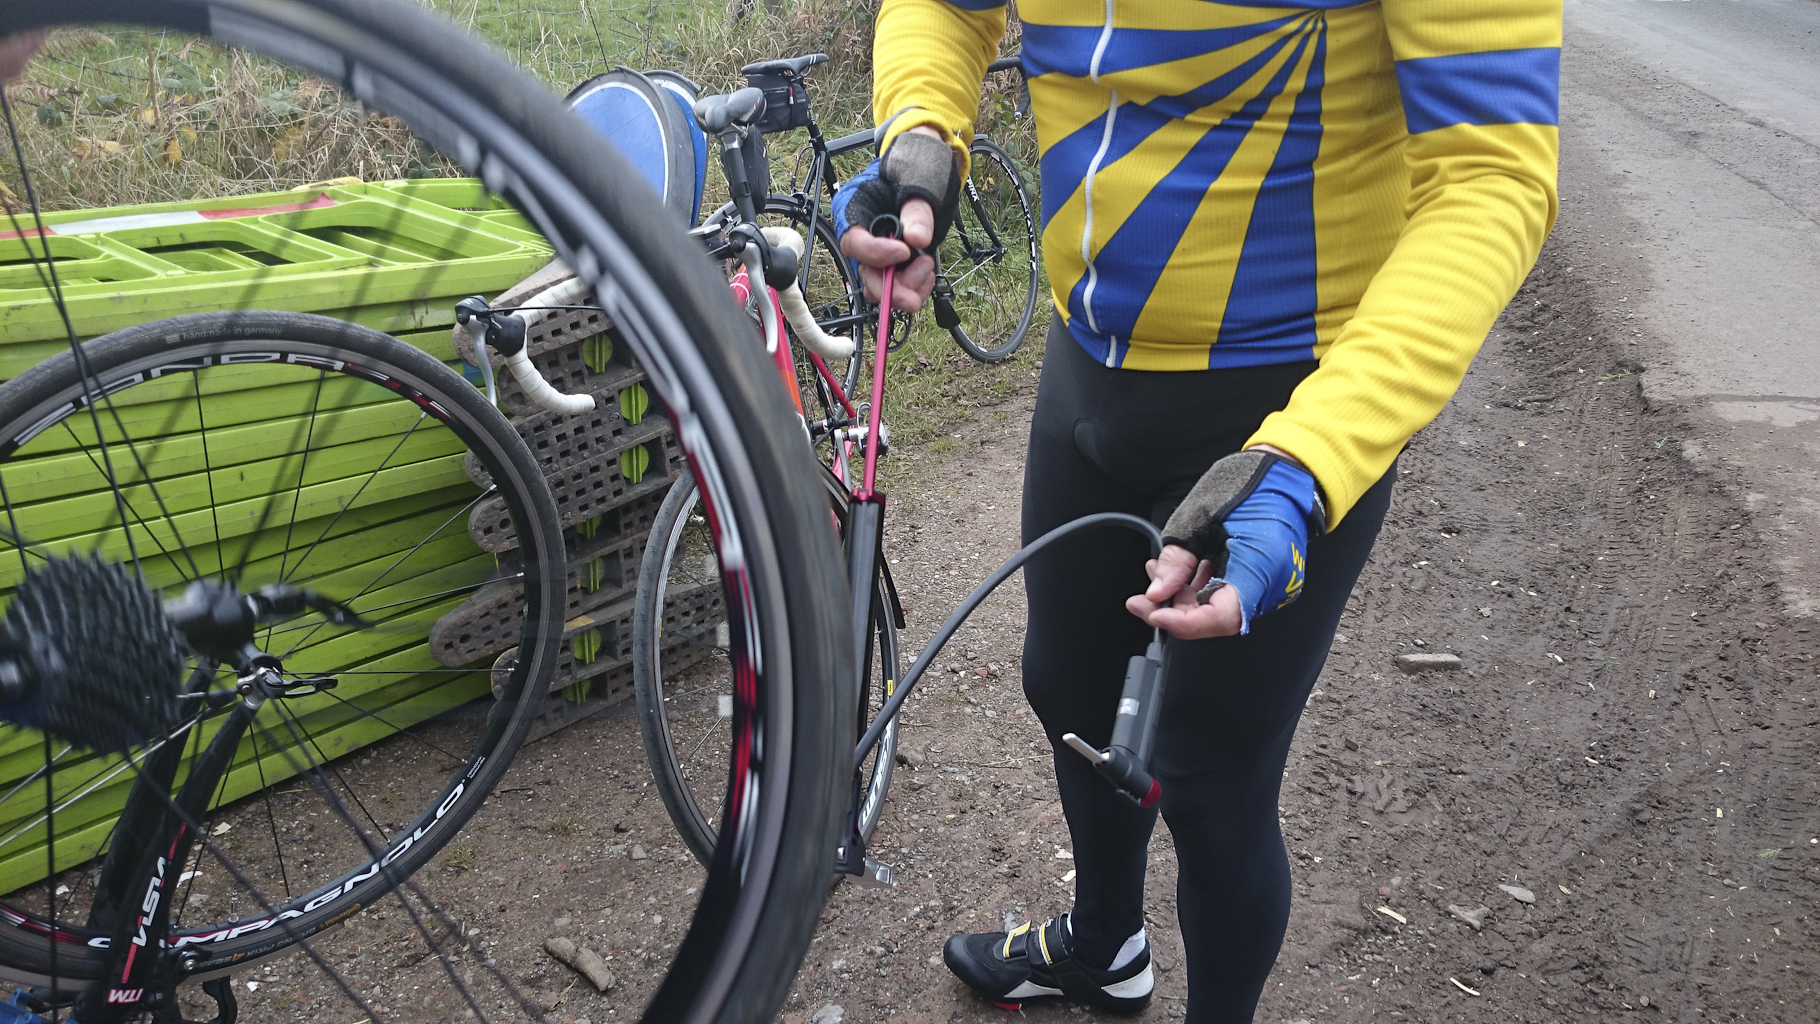 Club run – Chester 26/10/2014 – Al's new pump, and the new king of cake